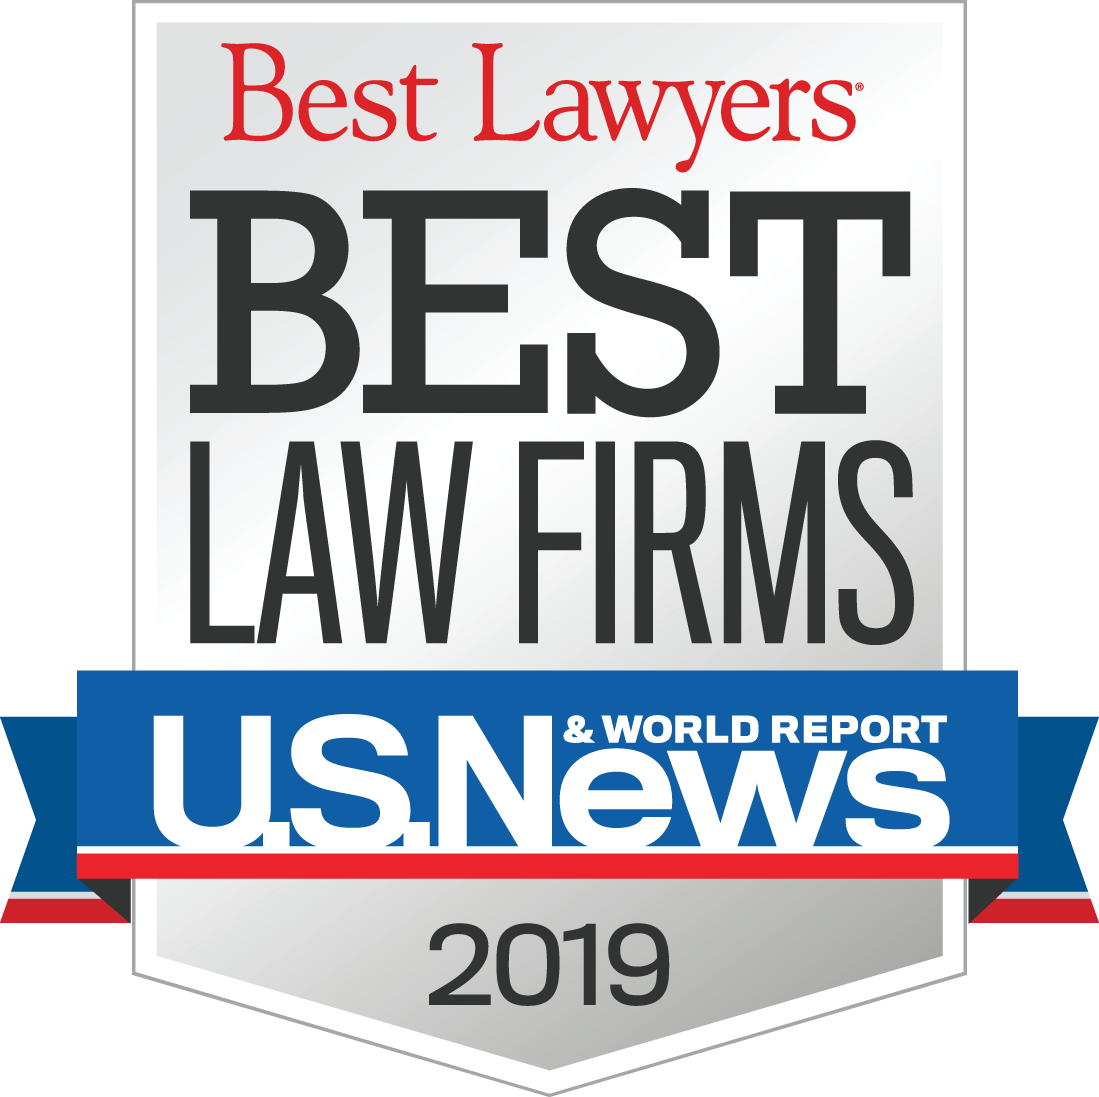 2019 Best Law Firms  | U.S. News Best Lawyers